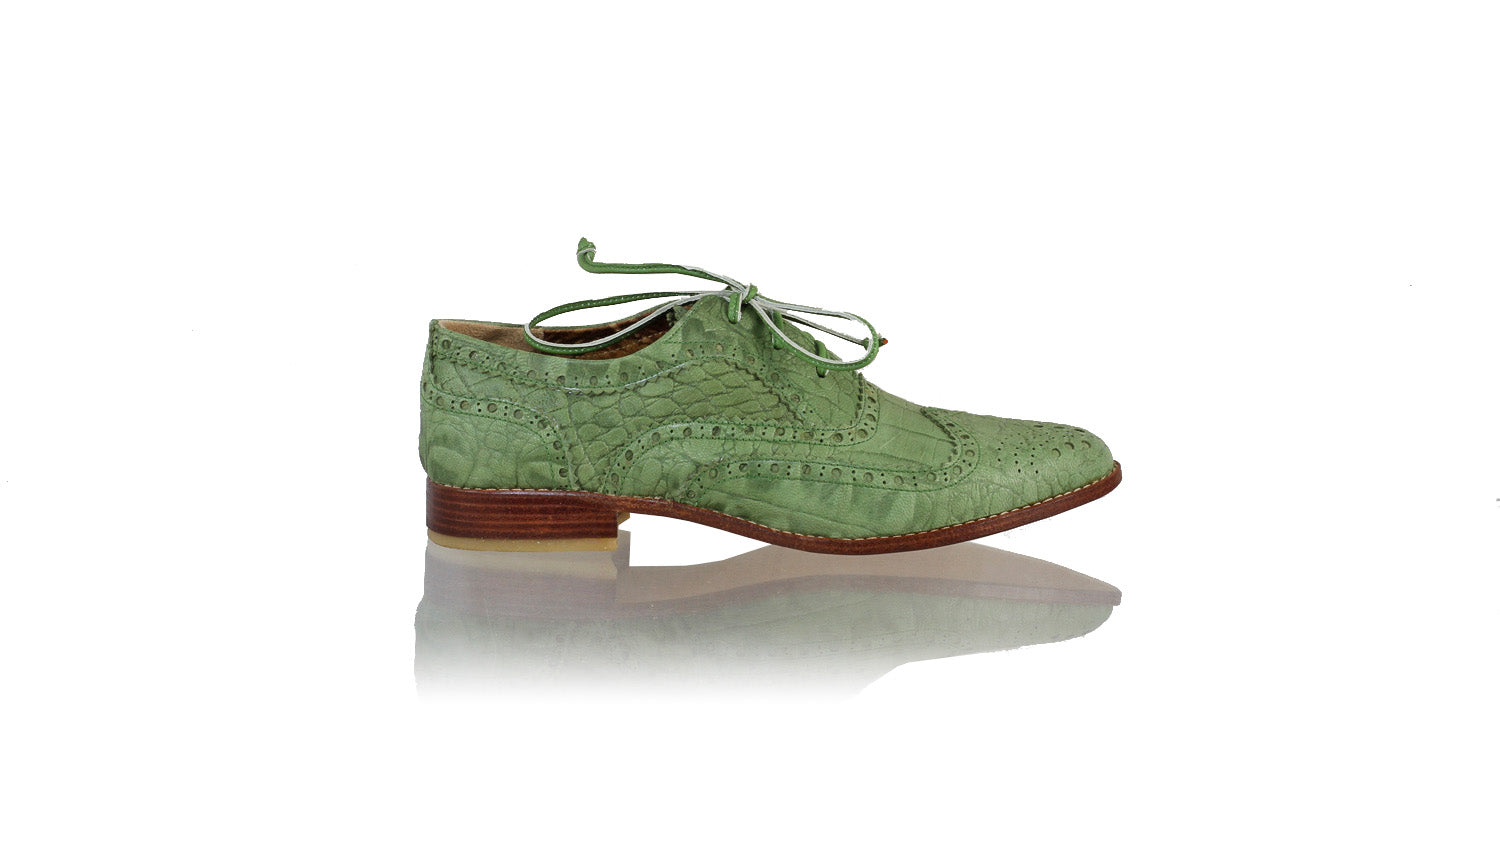 Leather-shoes-Pedro 25mm Flat - Green Croco Print-flats laceup-NILUH DJELANTIK-NILUH DJELANTIK